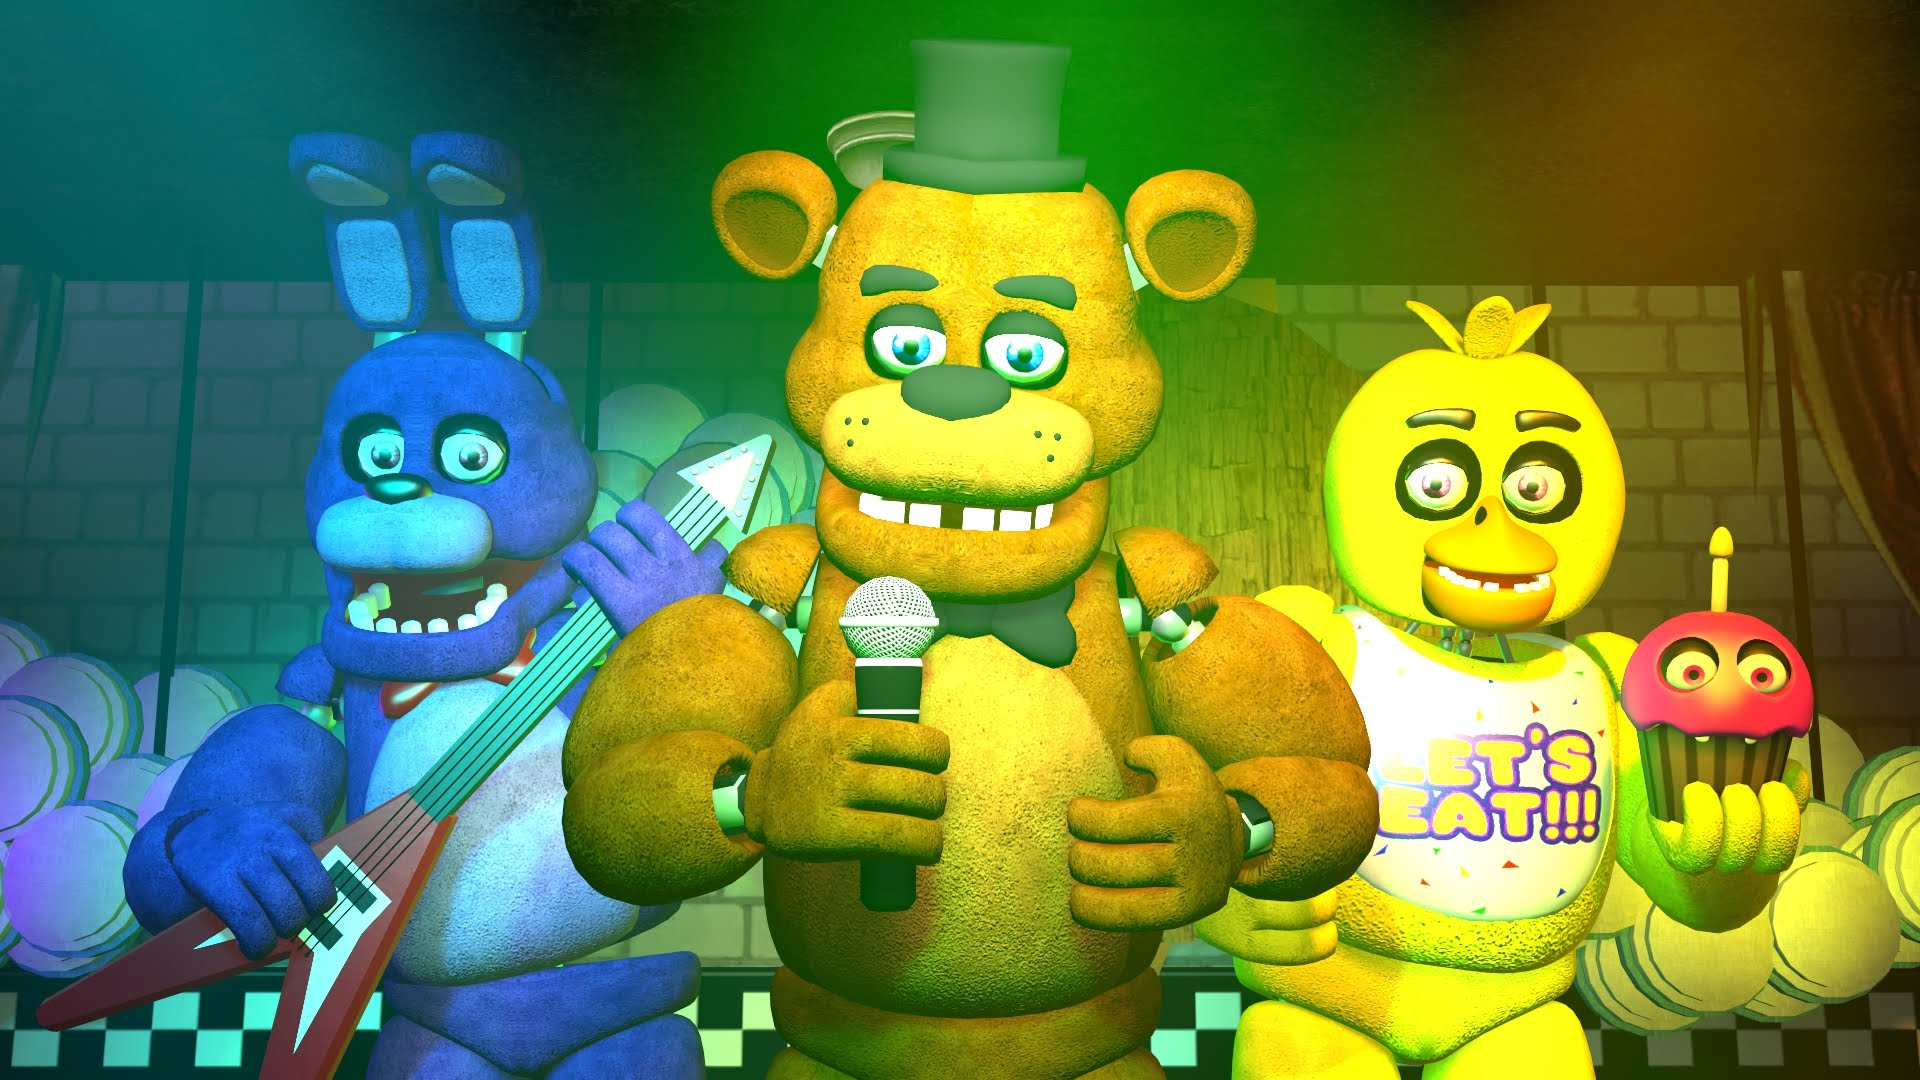 Five Nights At Freddy's Backgrounds, Compatible - PC, Mobile, Gadgets| 1920x1080 px